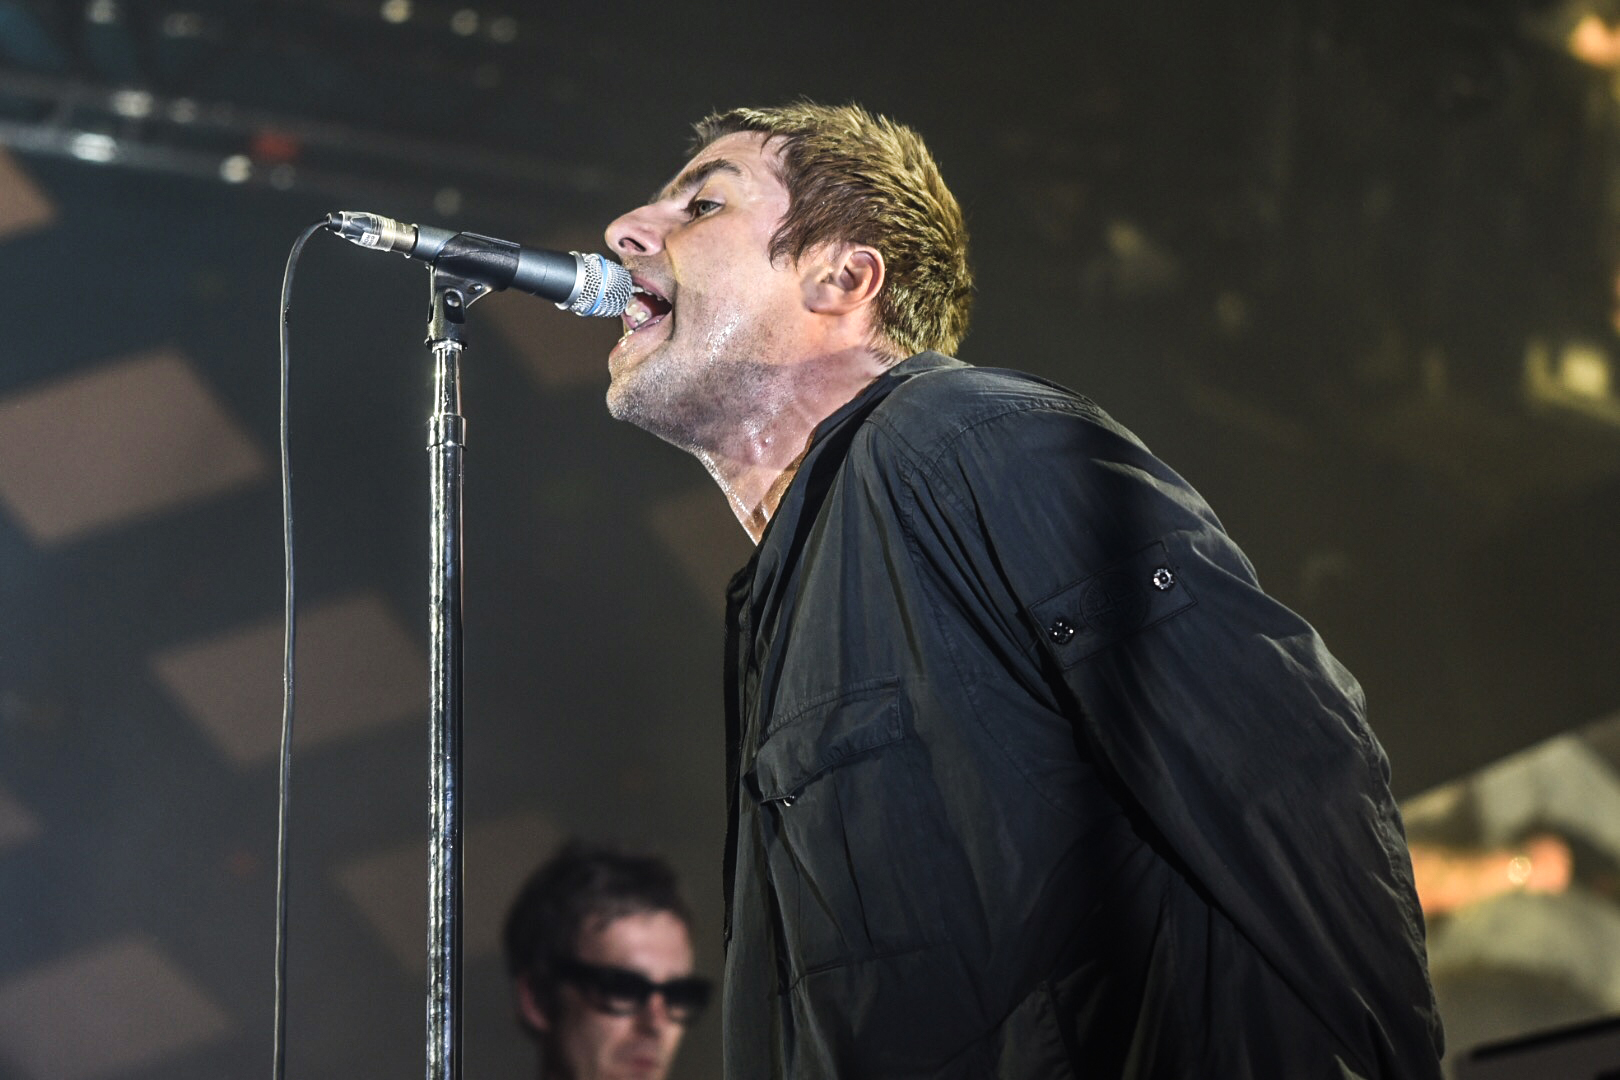 10 - Liam Gallagher performing to Sold Out Crowd at Glasgow's Barrowlands as part of As You Were Tour - 11-06-2017 - Pic By - Calum Buchan Photography - Copy.jpg